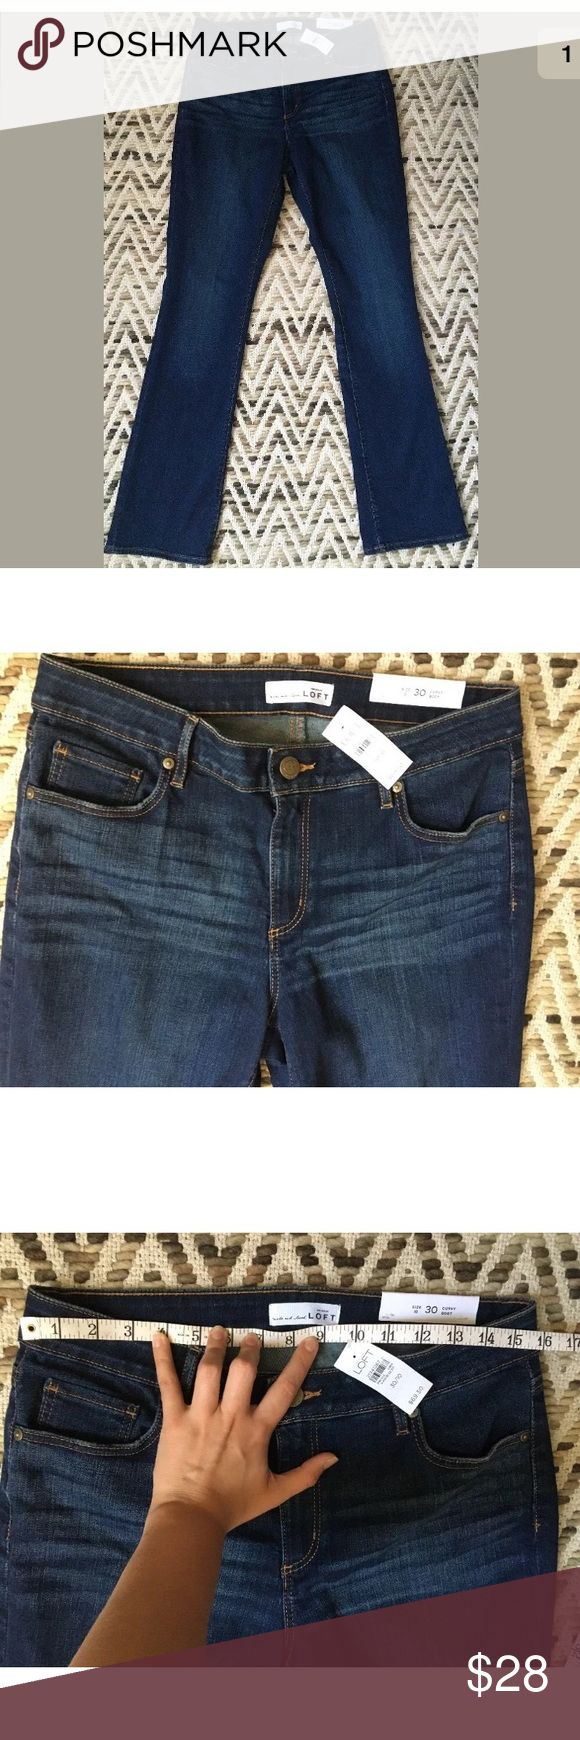 NWT Ann Taylor LOFT Curvy Boot Cut Jeans Size 10 New With Tags. Retails $69.50 Anne Taylor LOFT curvy bootcut jeans Size 10 or 30  Approximate measurements: Inseam: 35 Hip: 19.5 Ankle: 9 Thigh: 9.25 Ann Taylor Jeans Boot Cut